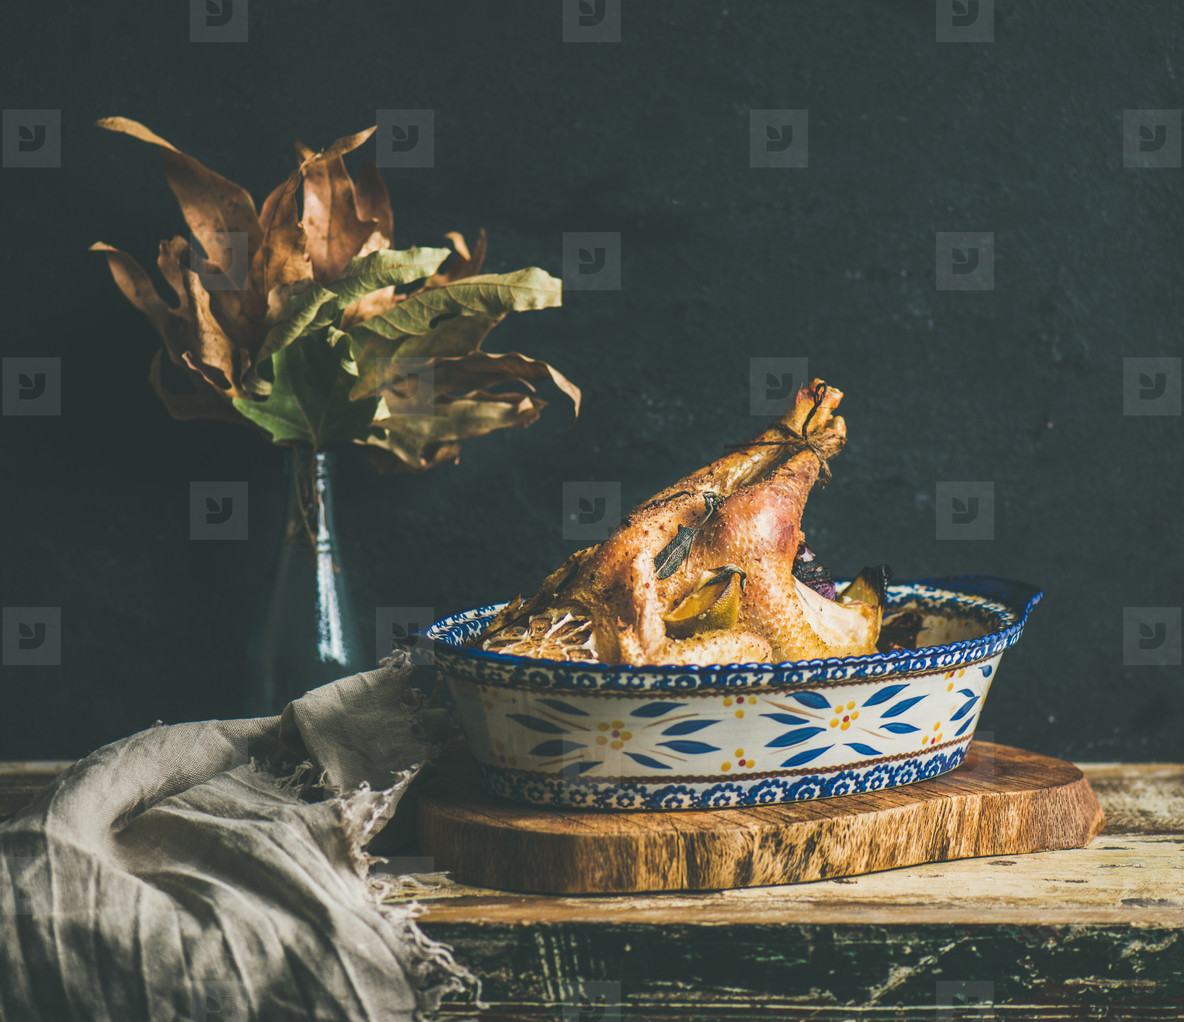 Roasted whole chicken for Christmas table  black wall background